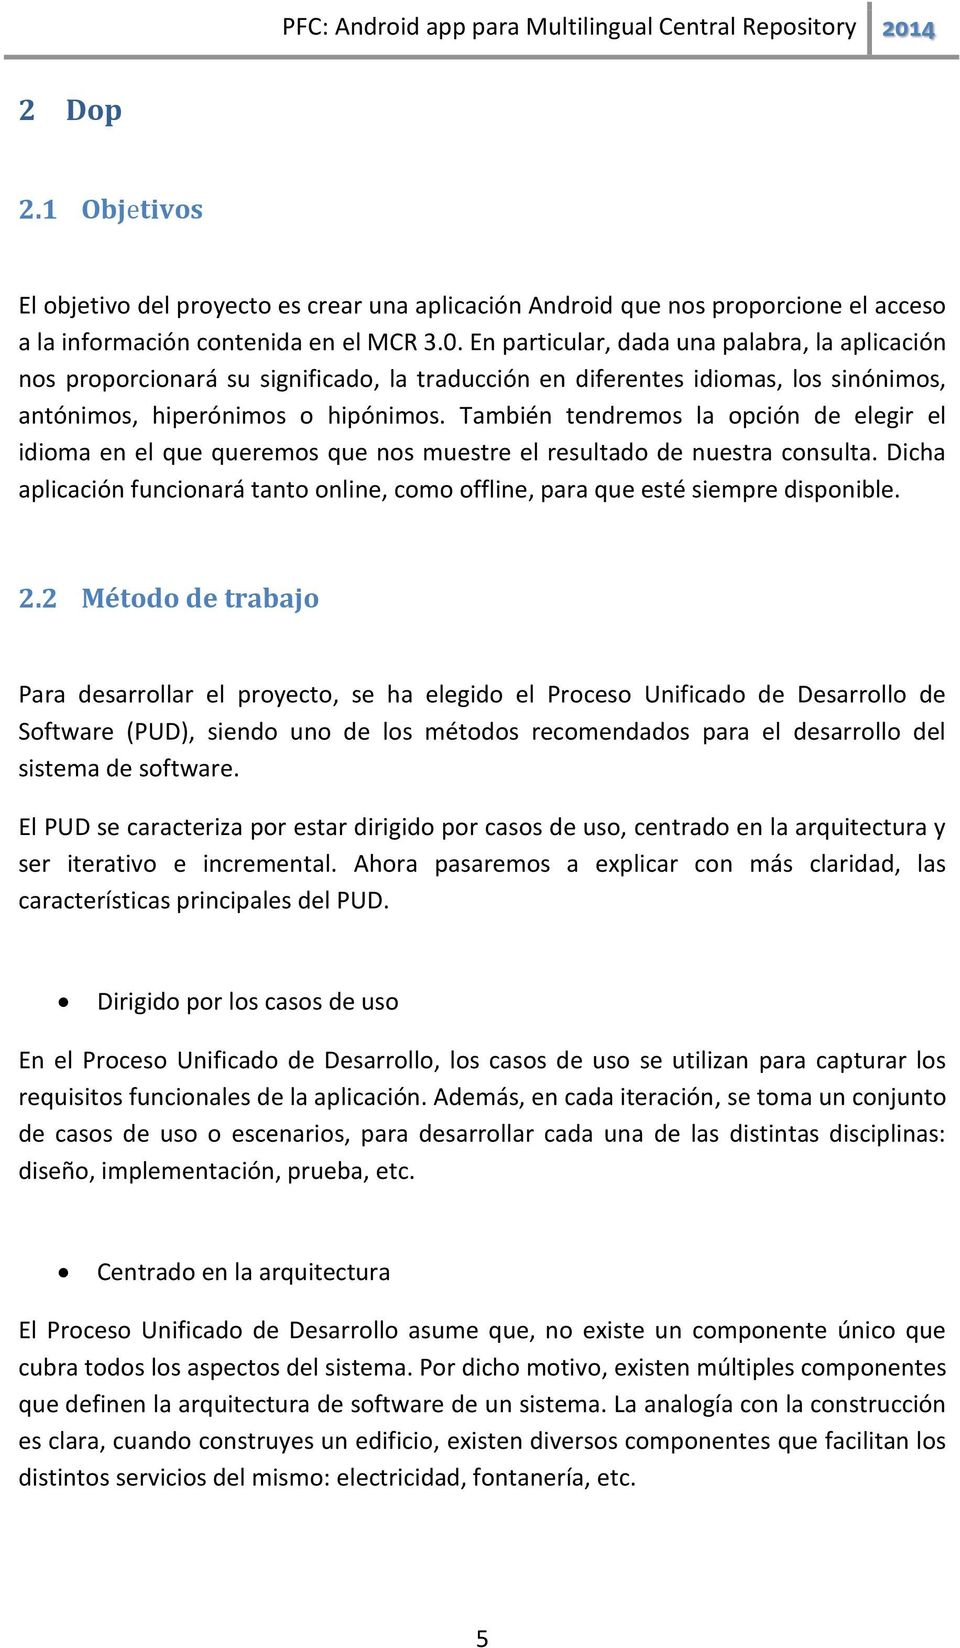 Android app para Multilingual Central Repository - PDF